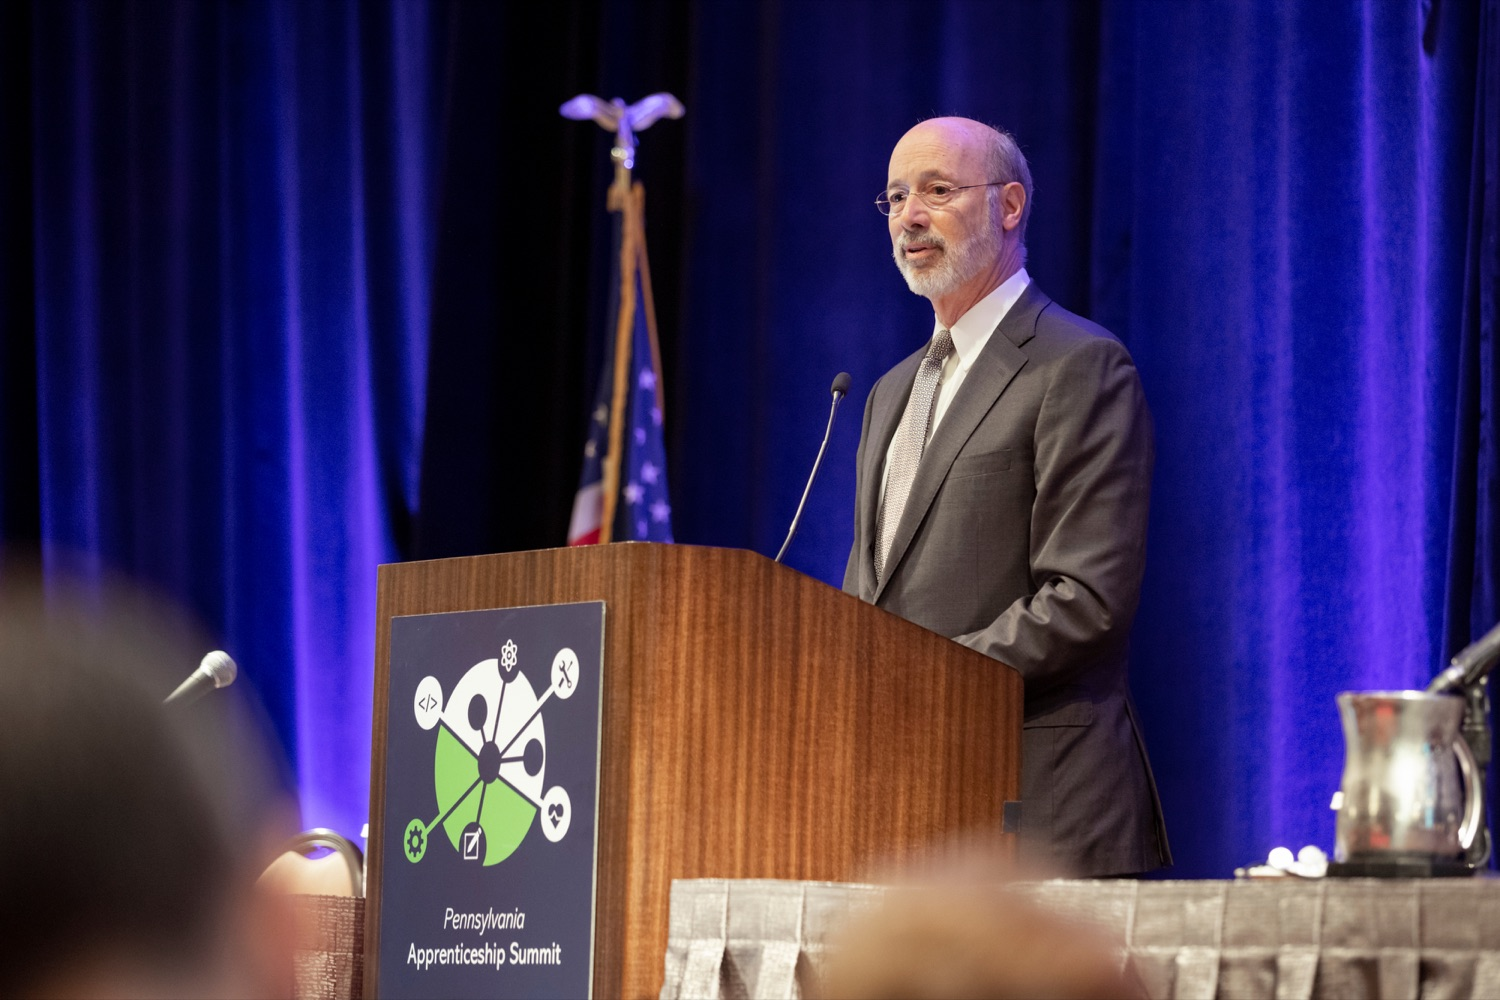 """<a href=""""http://filesource.abacast.com/commonwealthofpa/photo/17520_LandI_Apprenticeships_NK_013.JPG"""" target=""""_blank"""">⇣Download Photo<br></a>Pennsylvania Governor Tom Wolf speaks during the 2019 Pennsylvania Apprenticeship Summit at Hershey Lodge on Thursday, October 31, 2019."""